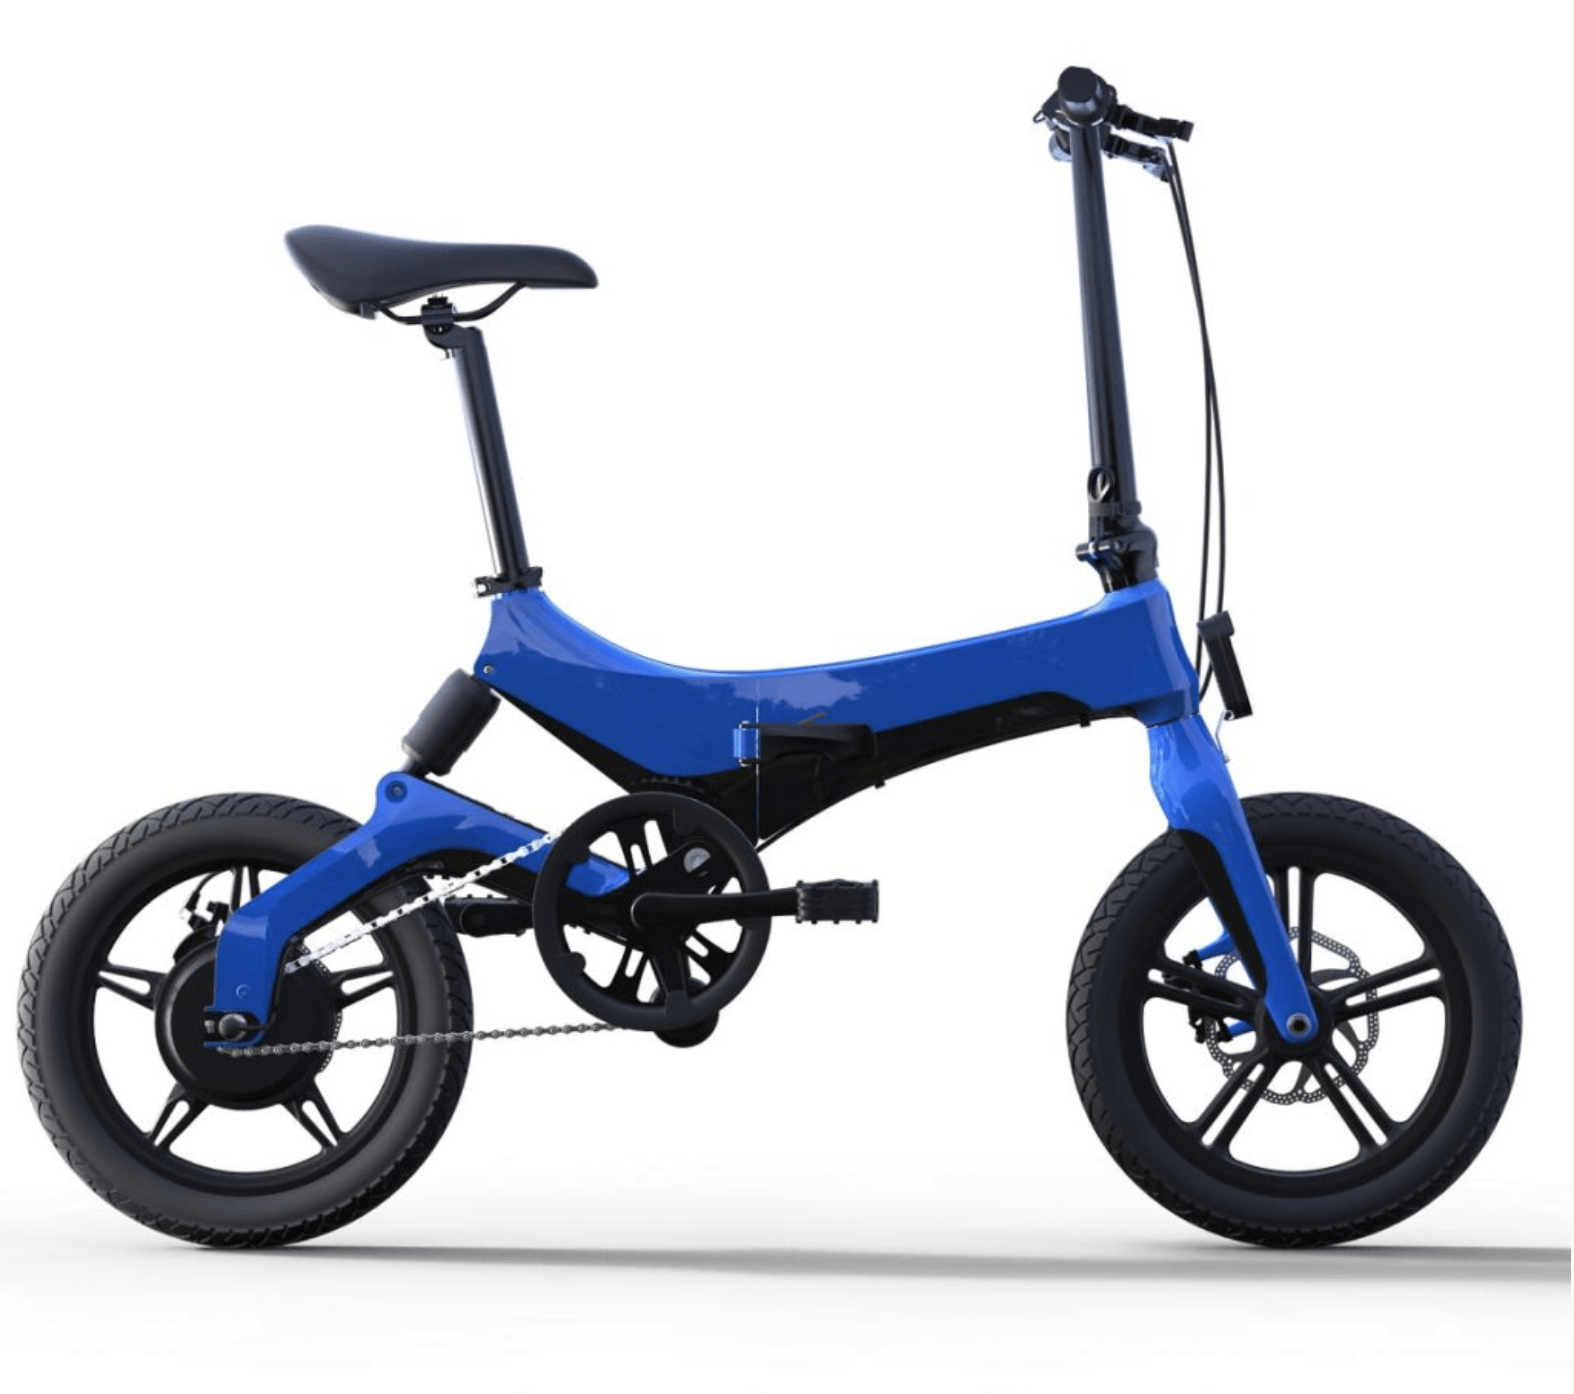 Electric Sports Bike >> 2019 Portable Folding Electric Bike Onebot Sport S6 Cycle